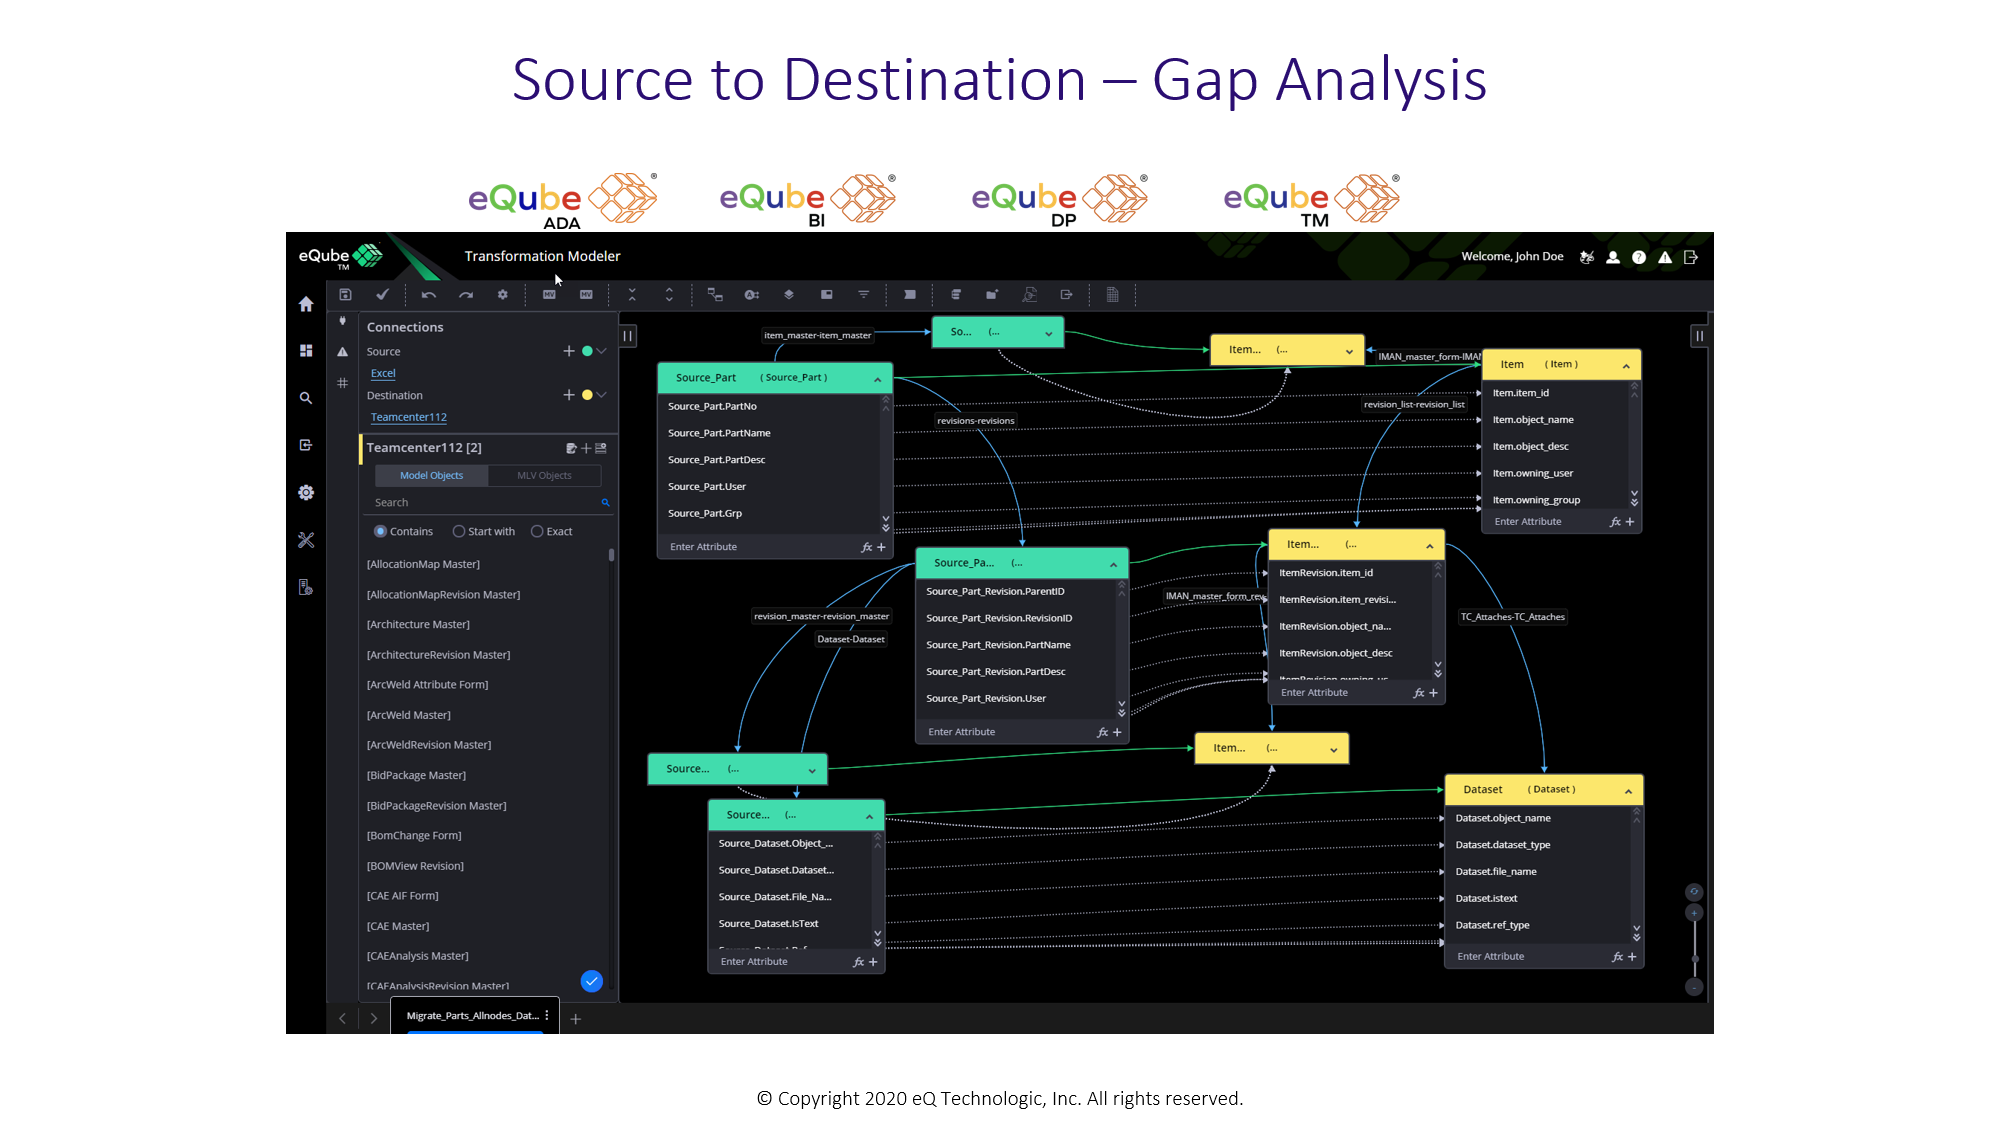 eQube-TM: Maps identifying gaps in the Destination system model